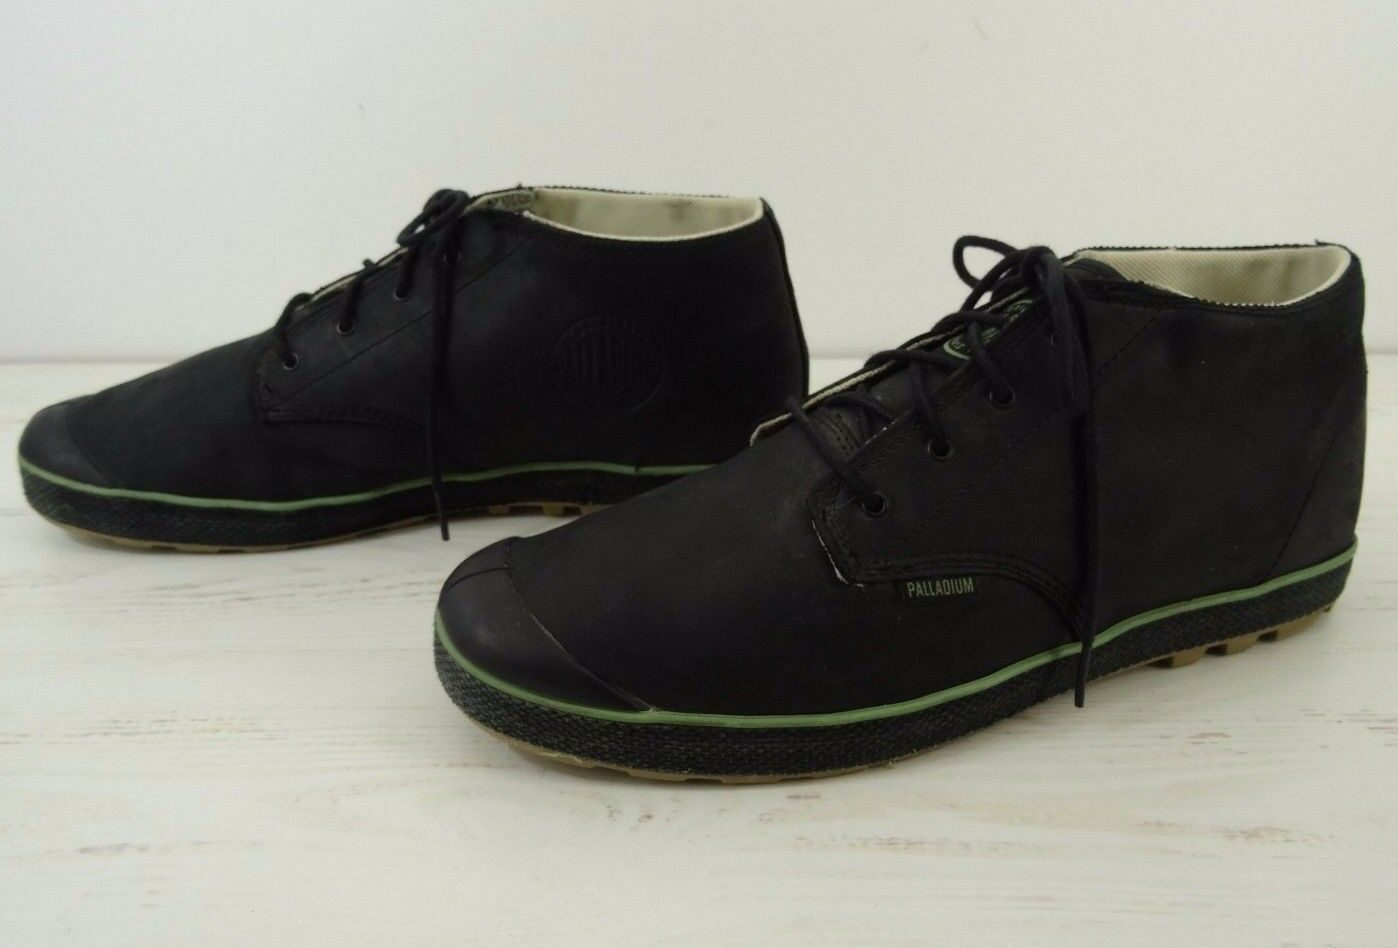 Palladium mens size 14 Shoes Boot Black Leather